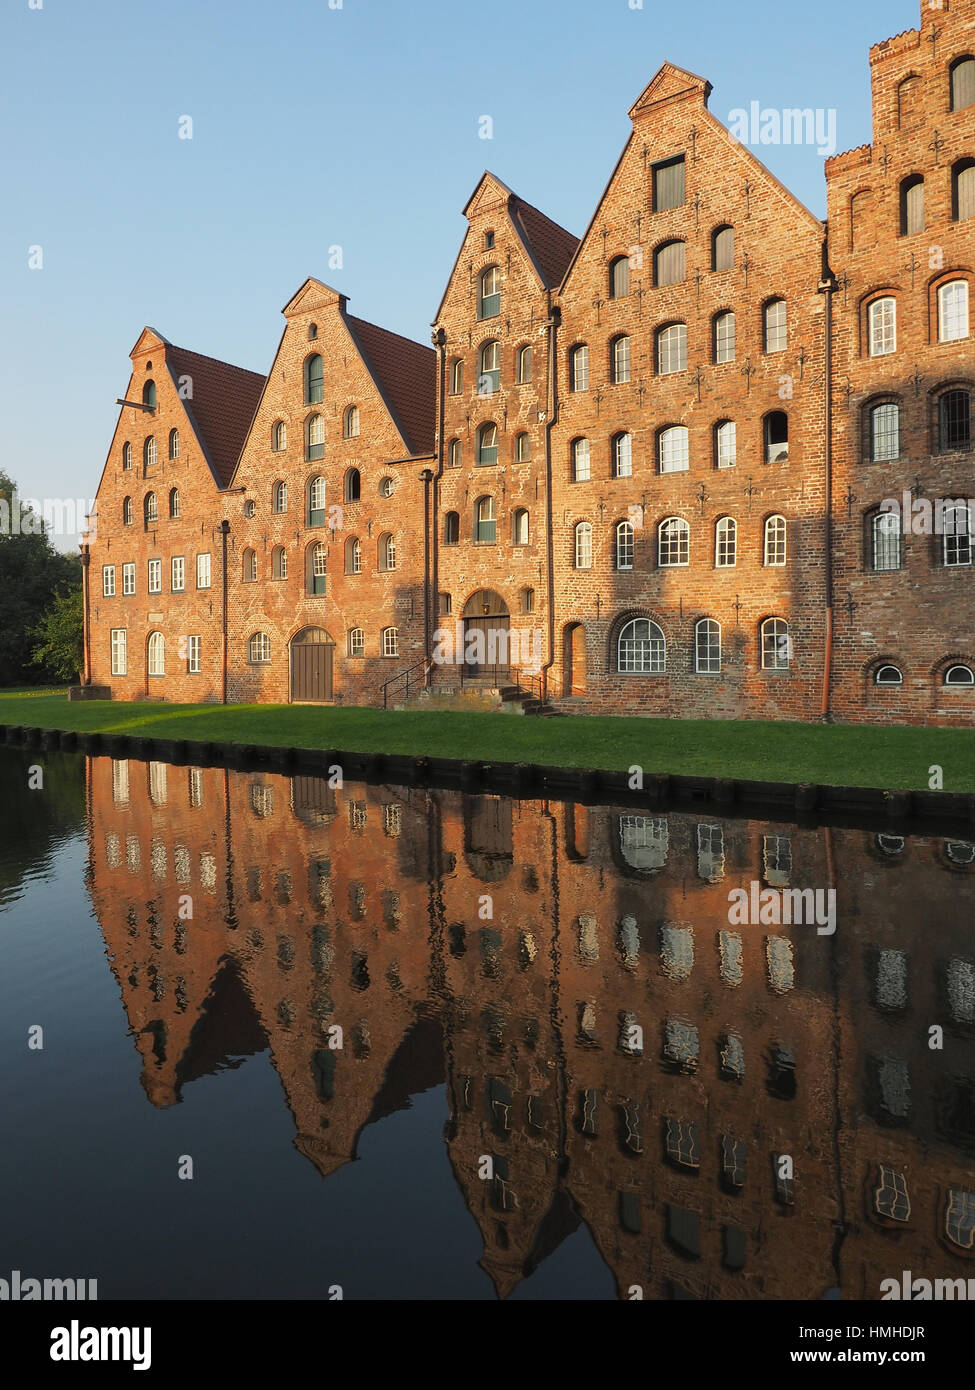 salt storages of Luebeck, Germany - Stock Image